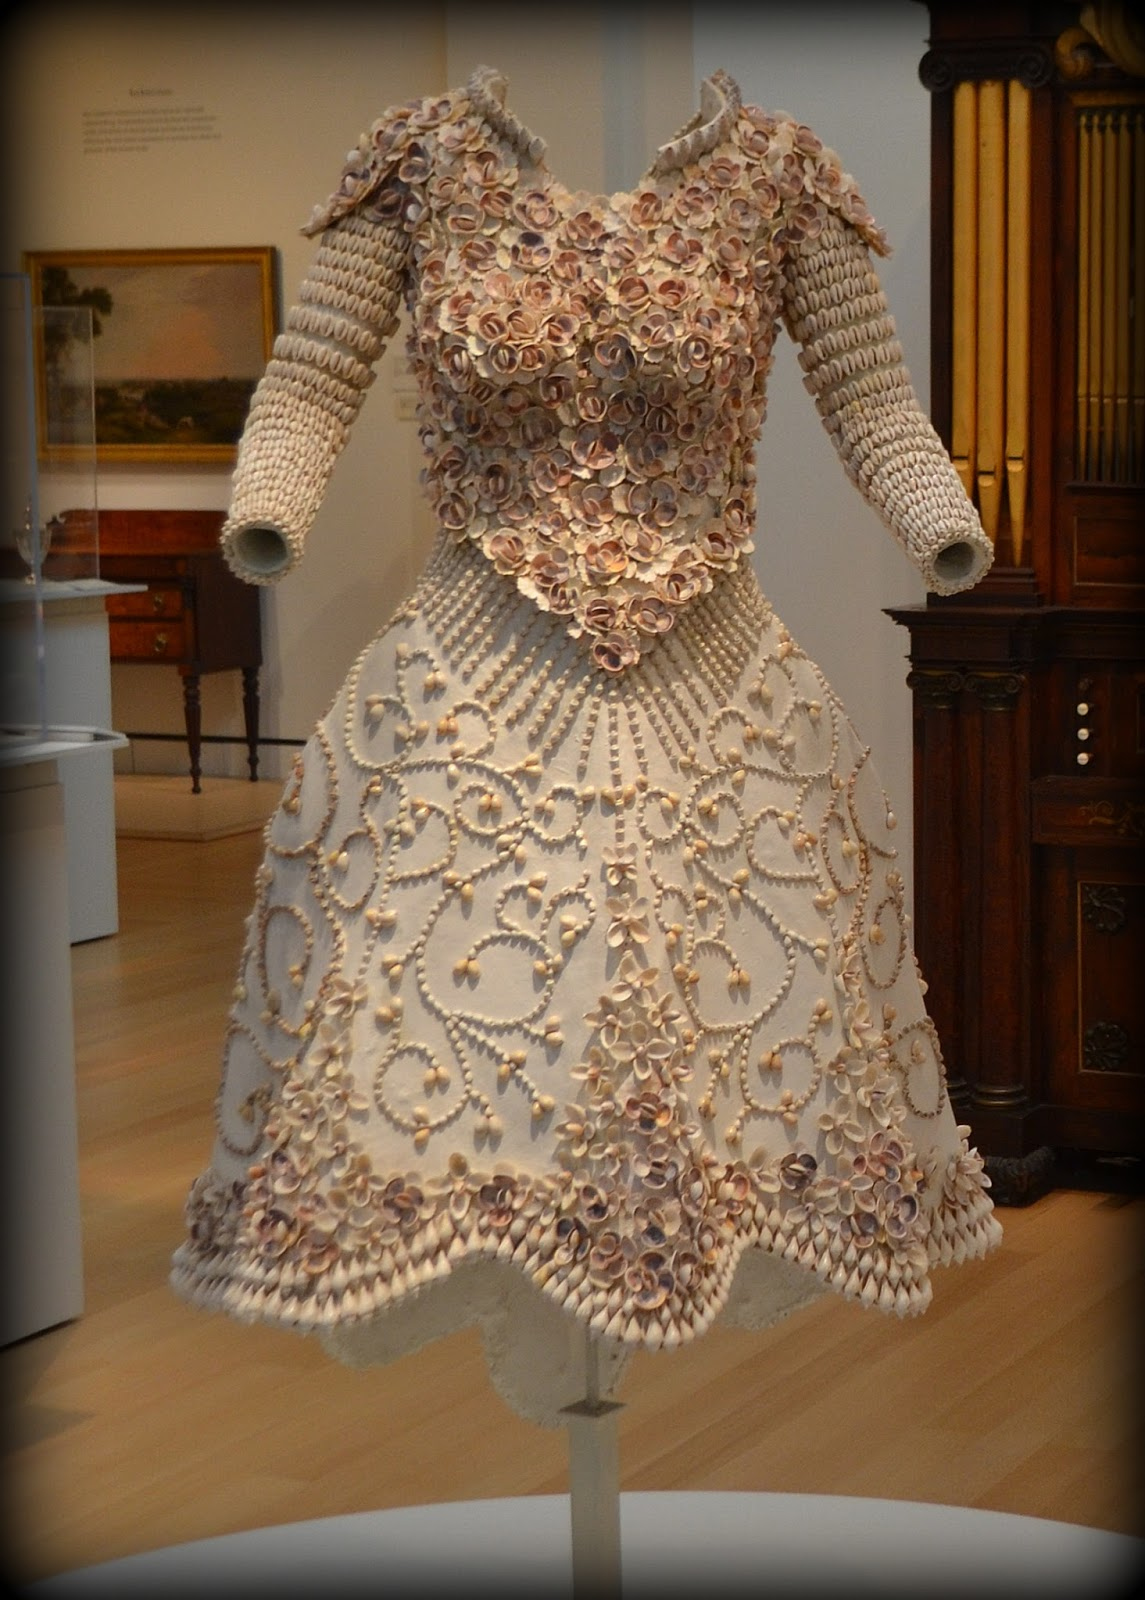 seashell, wedding, dress, peabody essex museum, pem, clothing